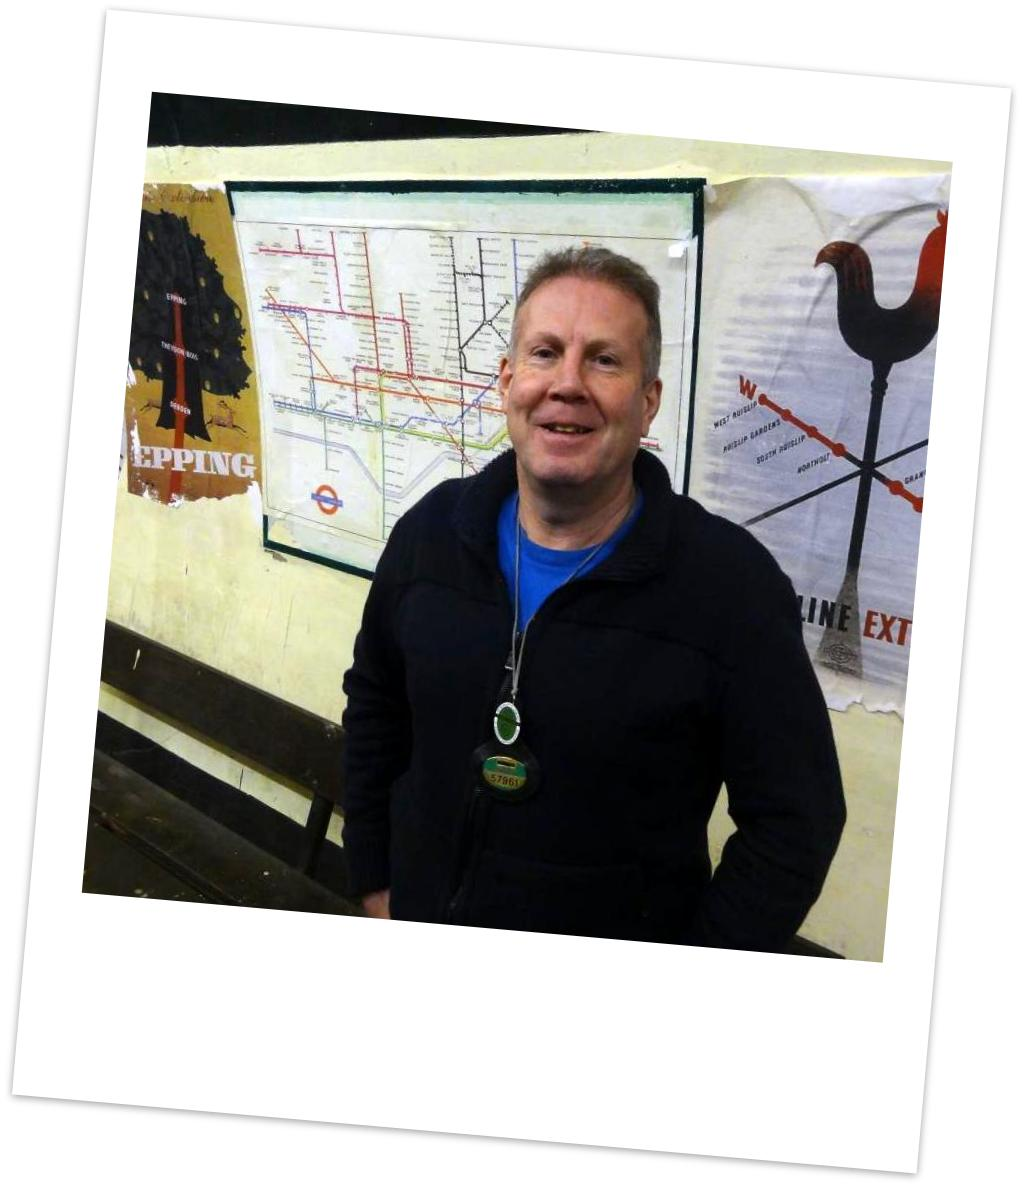 Steve at Aldwych underground station